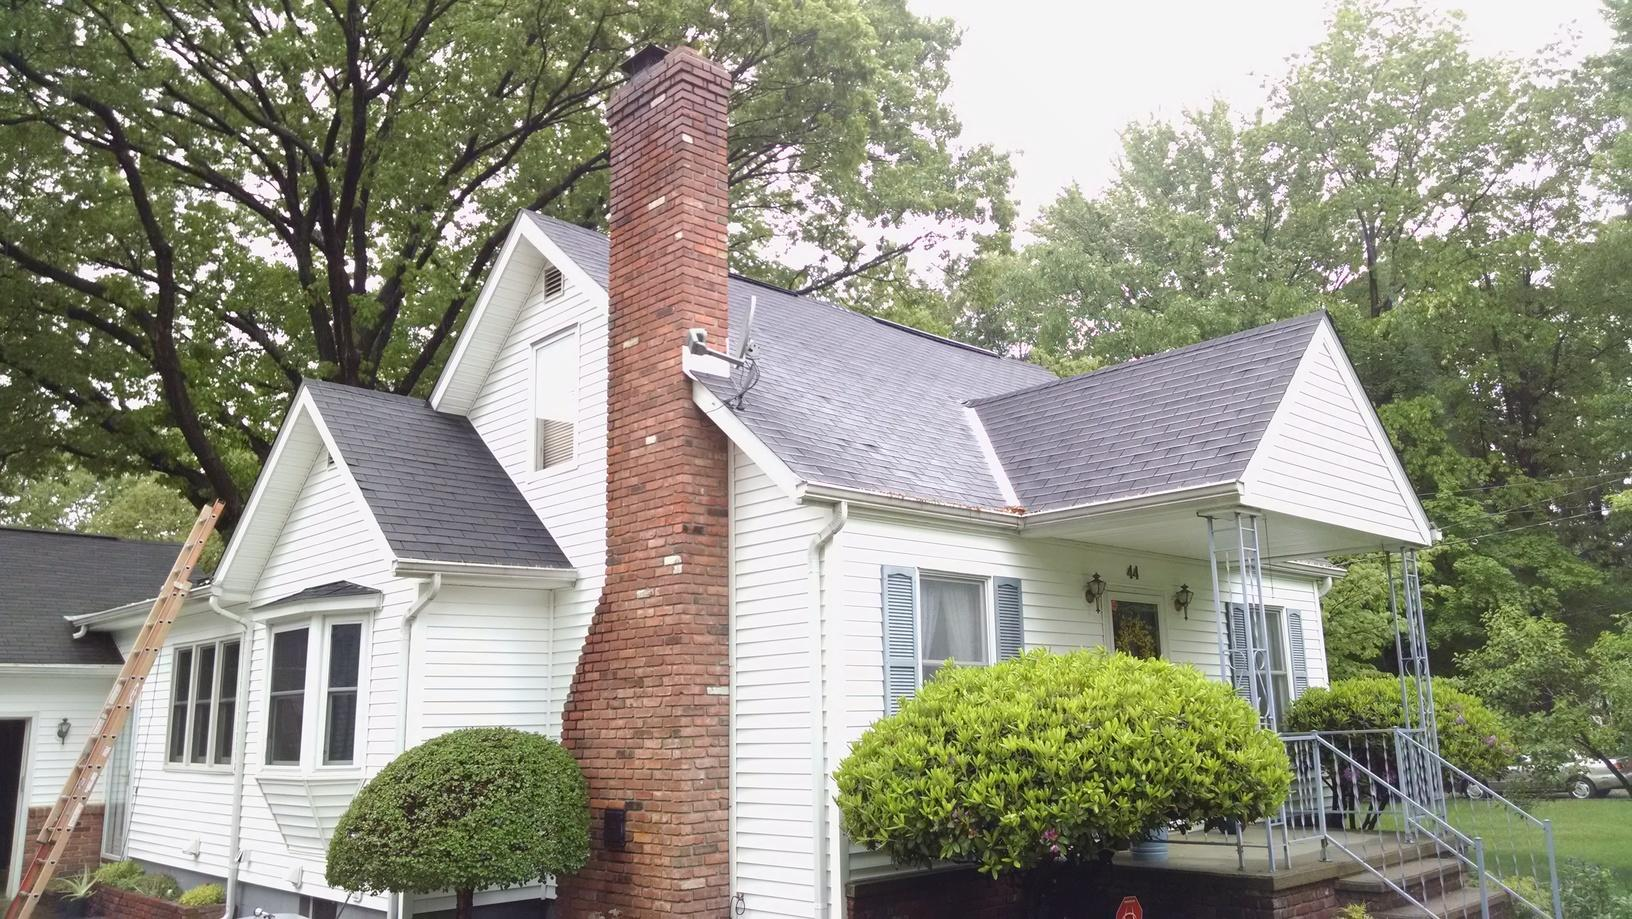 Painesville Twp Roof & Gutter Replacement Max Def - Before Photo